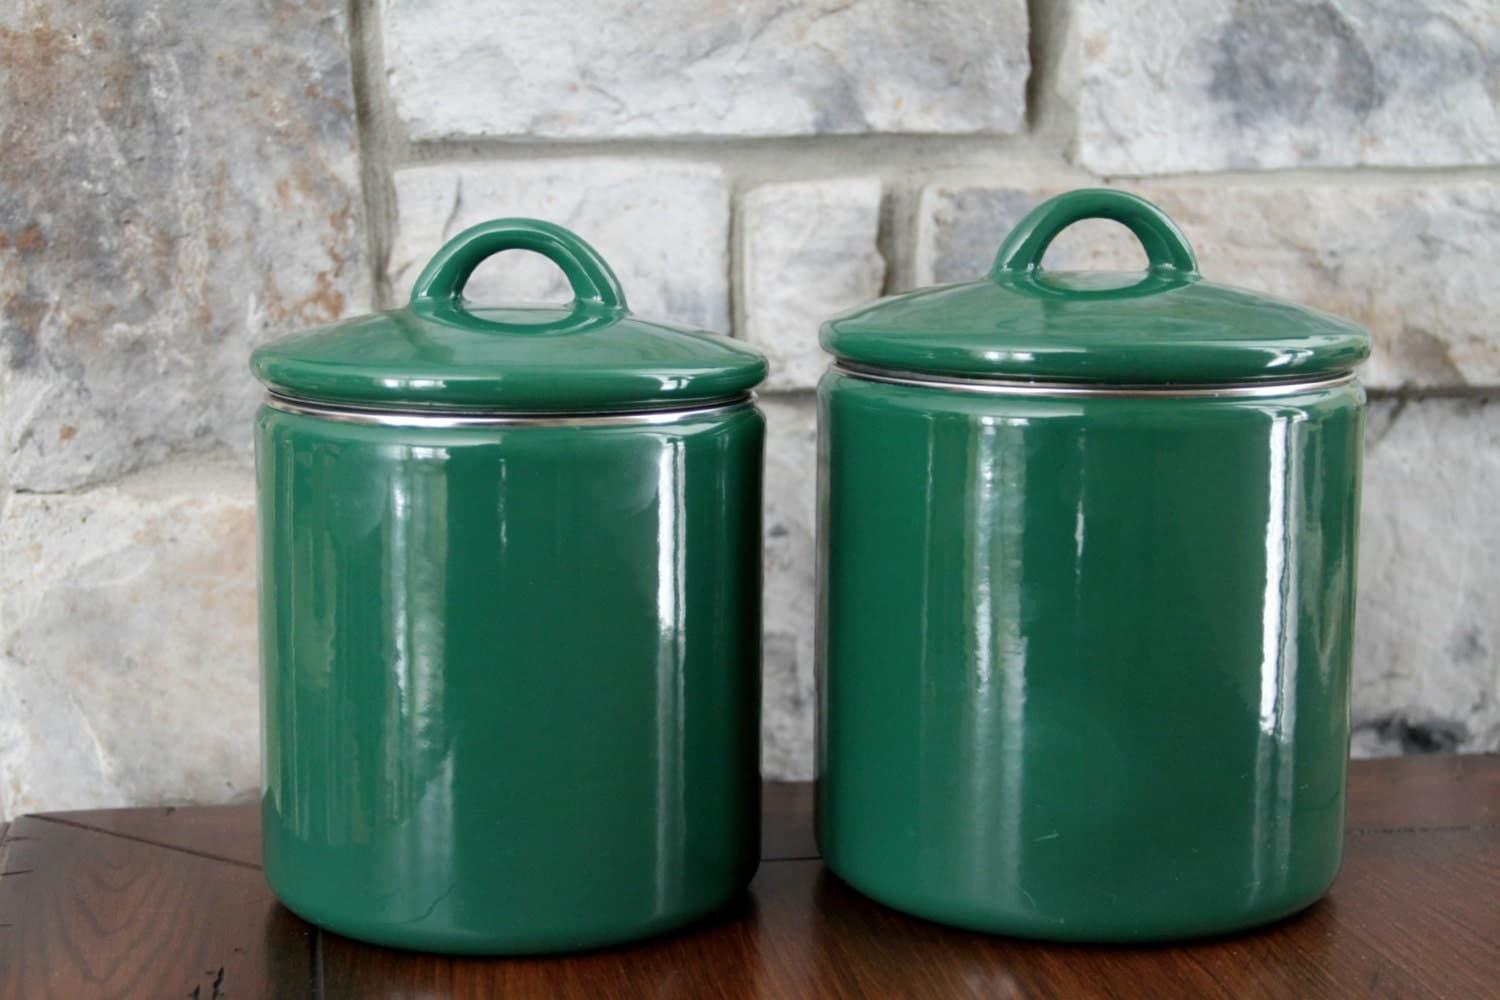 enamel kitchen canisters enamel canisters green canister kitchen storage by mochagallery 3624